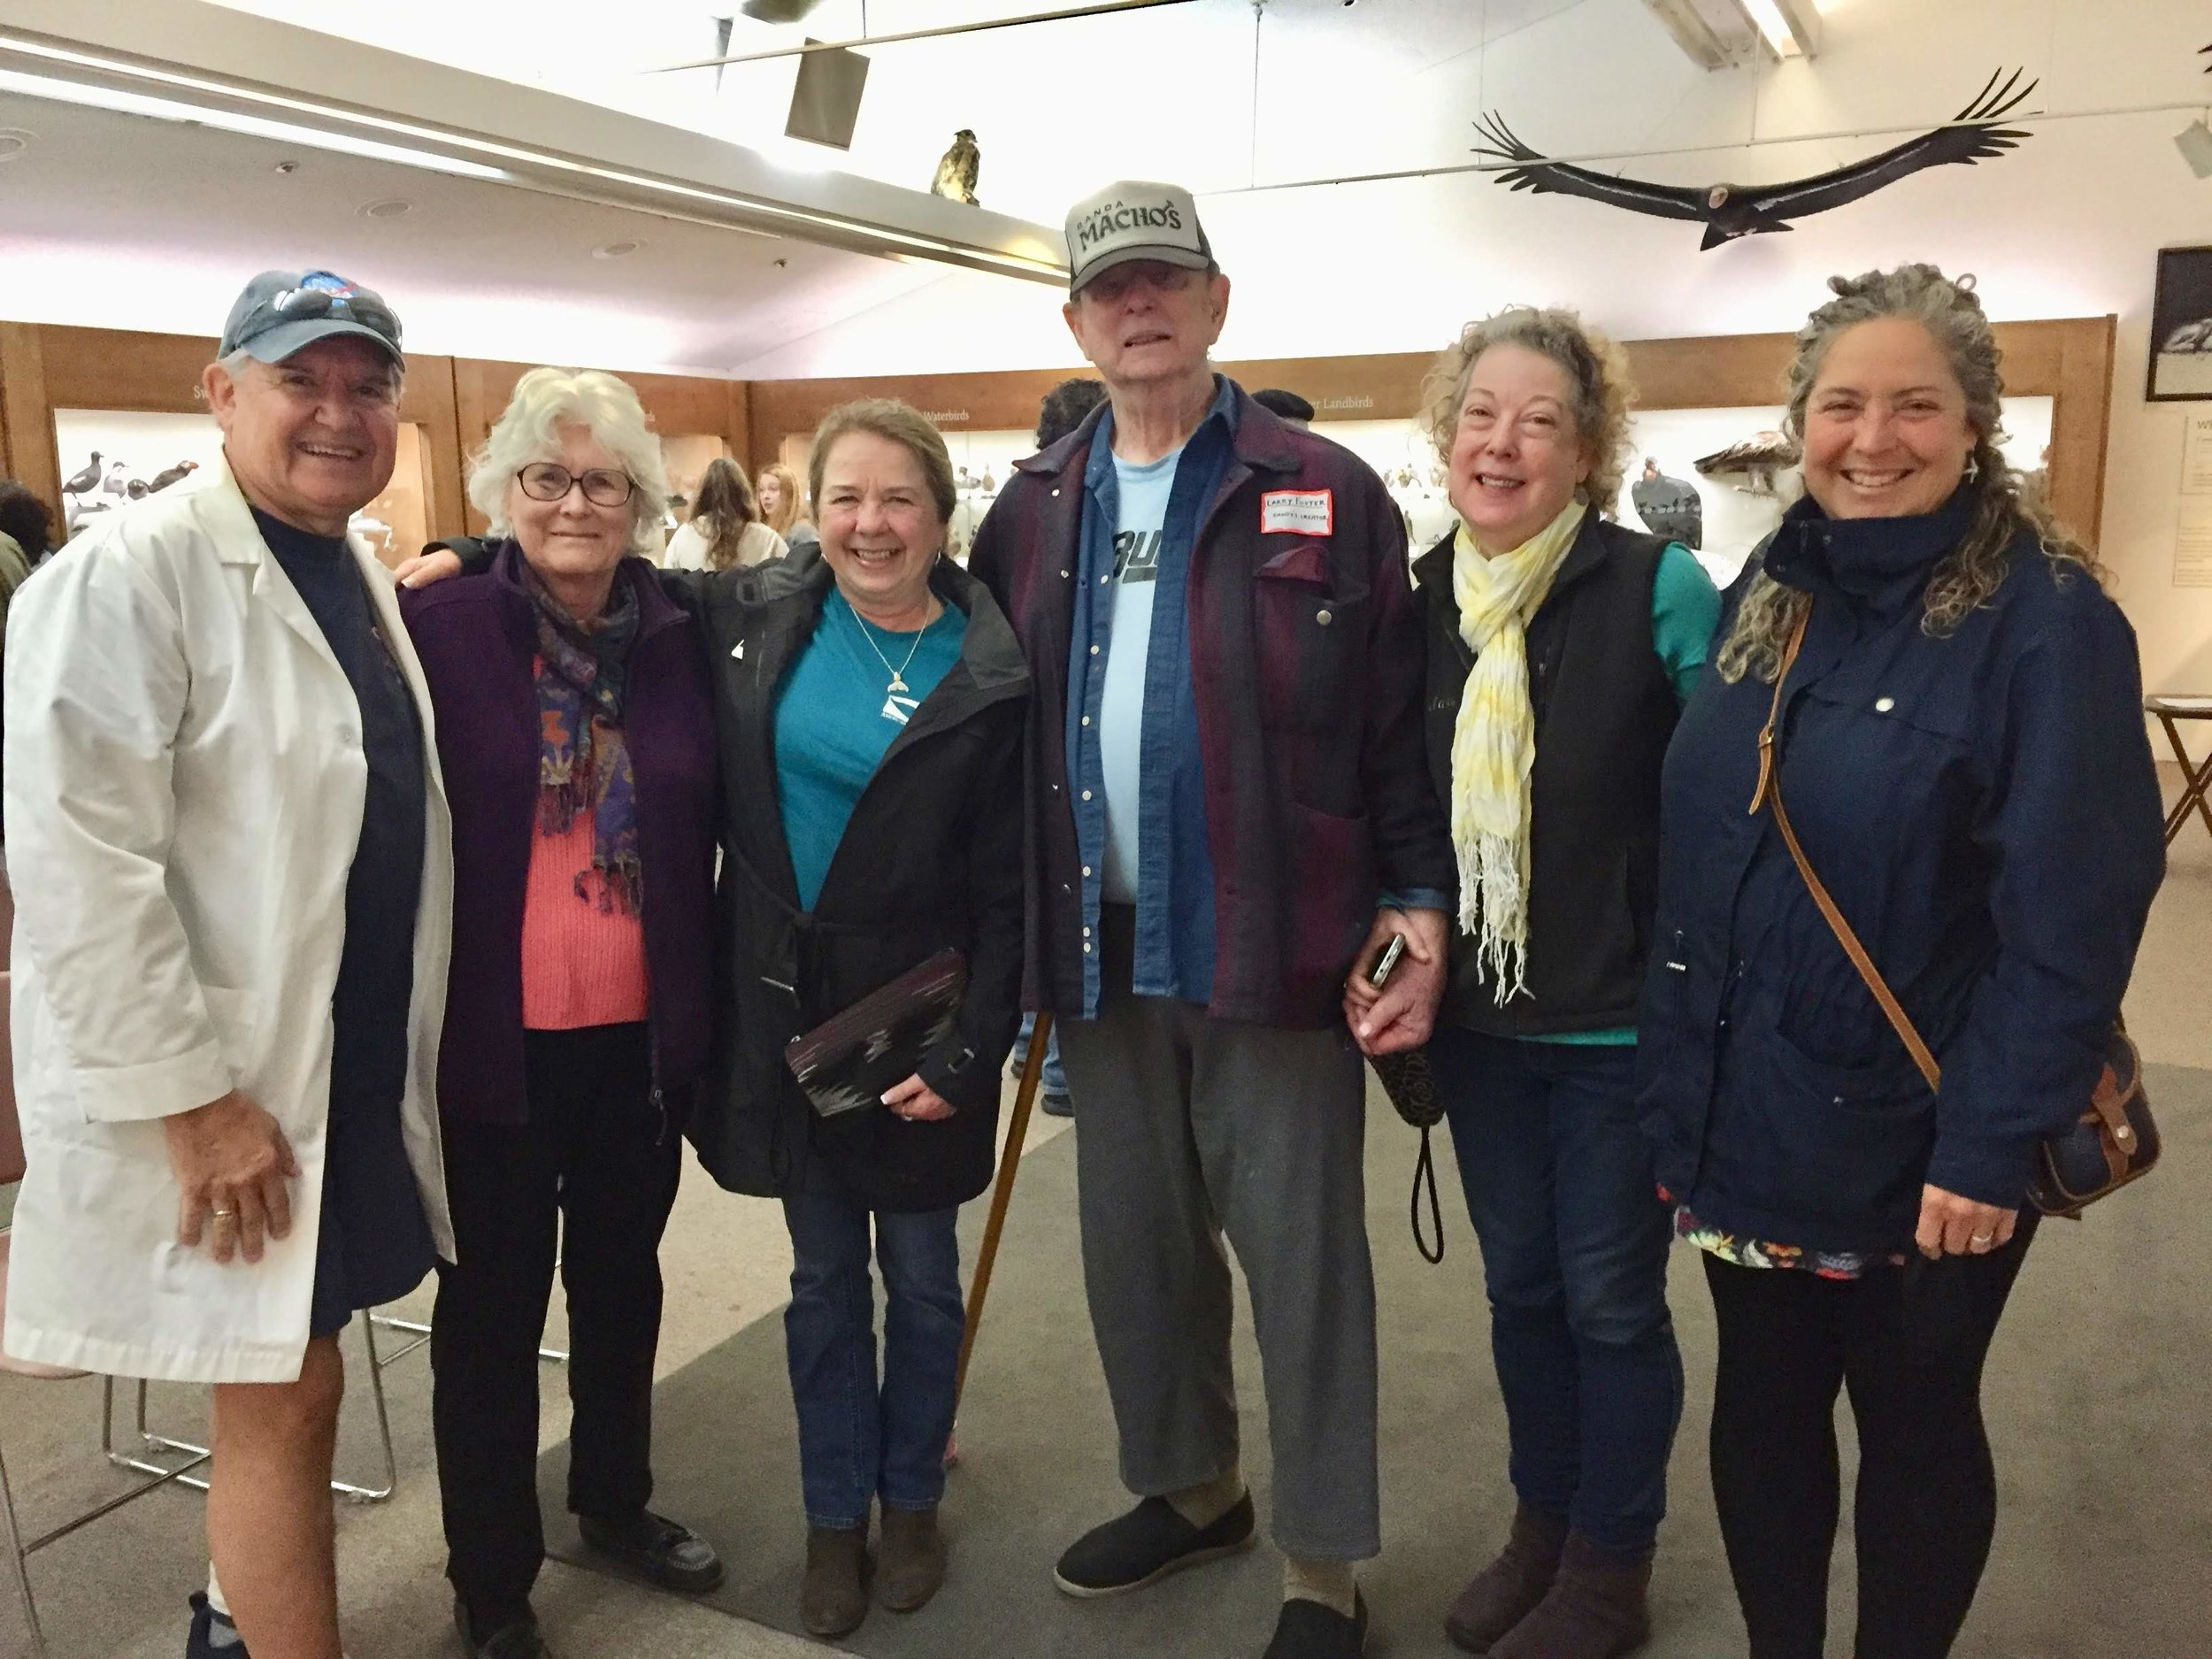 Current and former Monterey Bay Chapter members of the  American Cetacean Society  shared stories, caught up and enjoyed time with the guests of honor.   (Standing left to right):  Milos Radakovich, Sheila Baldridge, Diane Glim, Larry and Mary Foster, and Diana L Guerrero (aka ARKlady.)